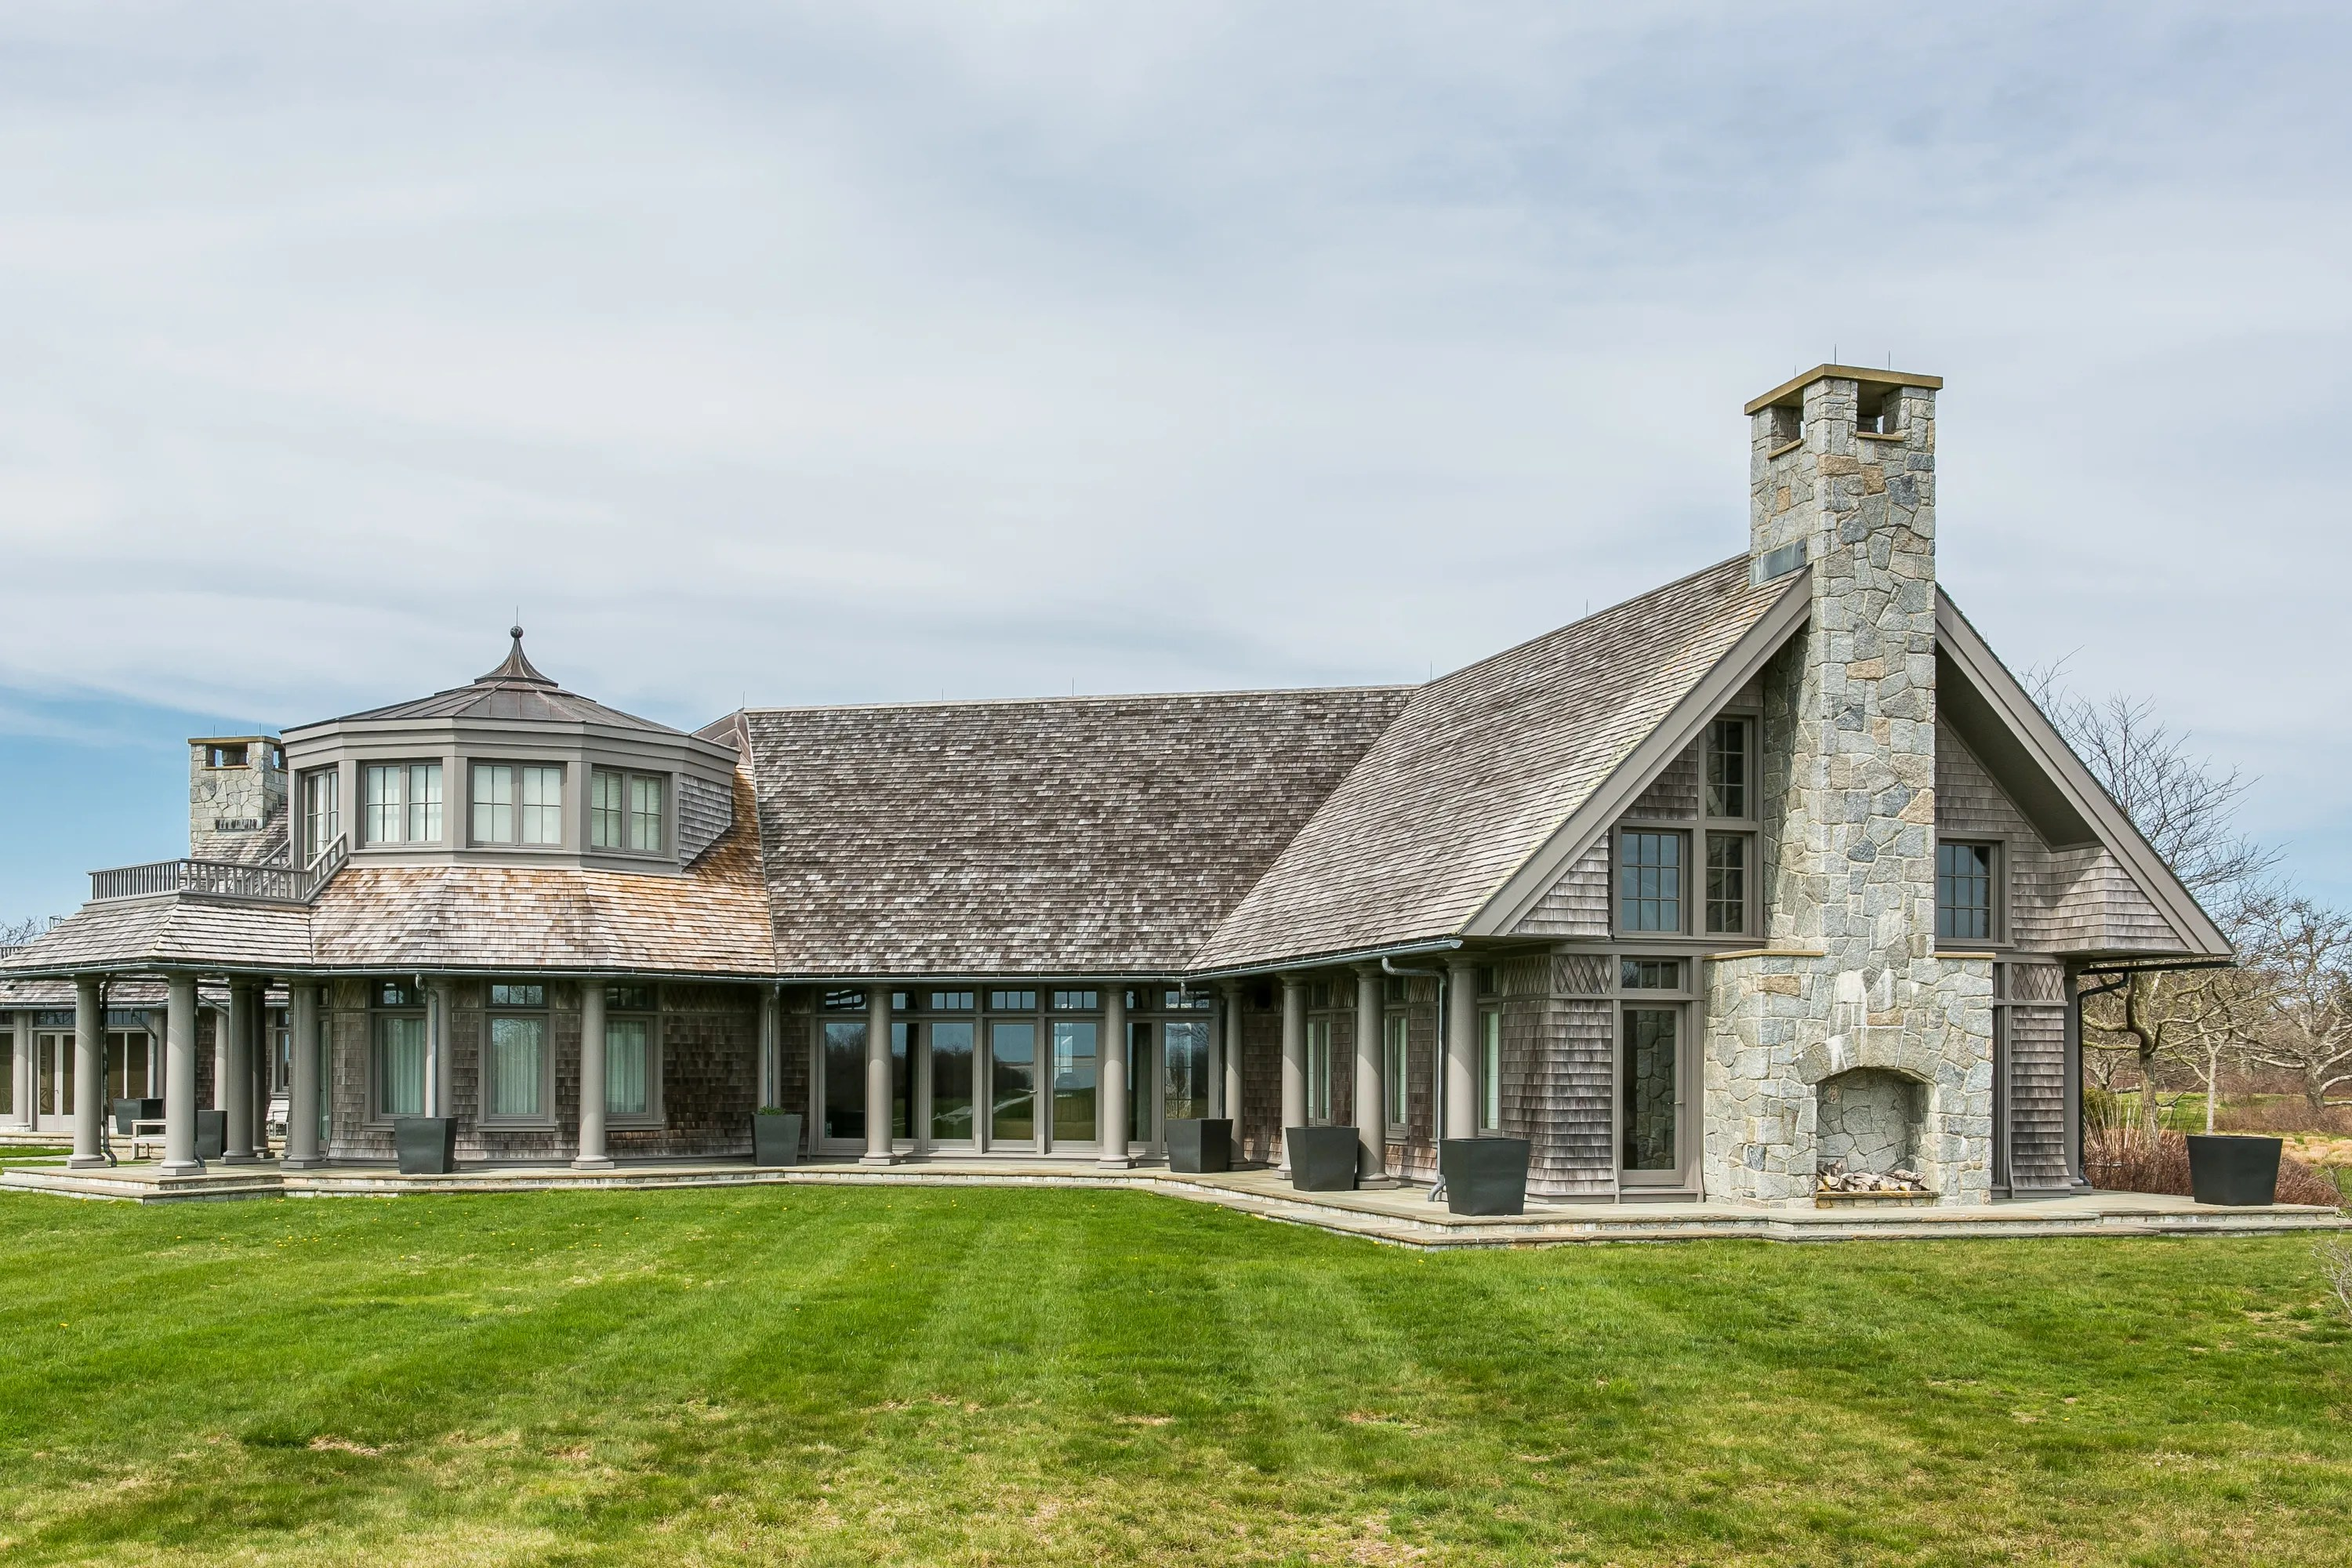 Sweet Architectural Digest A Cape House On Acres Is On Market A Cape House On Acres Is On Market Open Plan Cape Cod Style Homes Plans Cape Cod Style Homes houzz-03 Cape Cod Style Homes